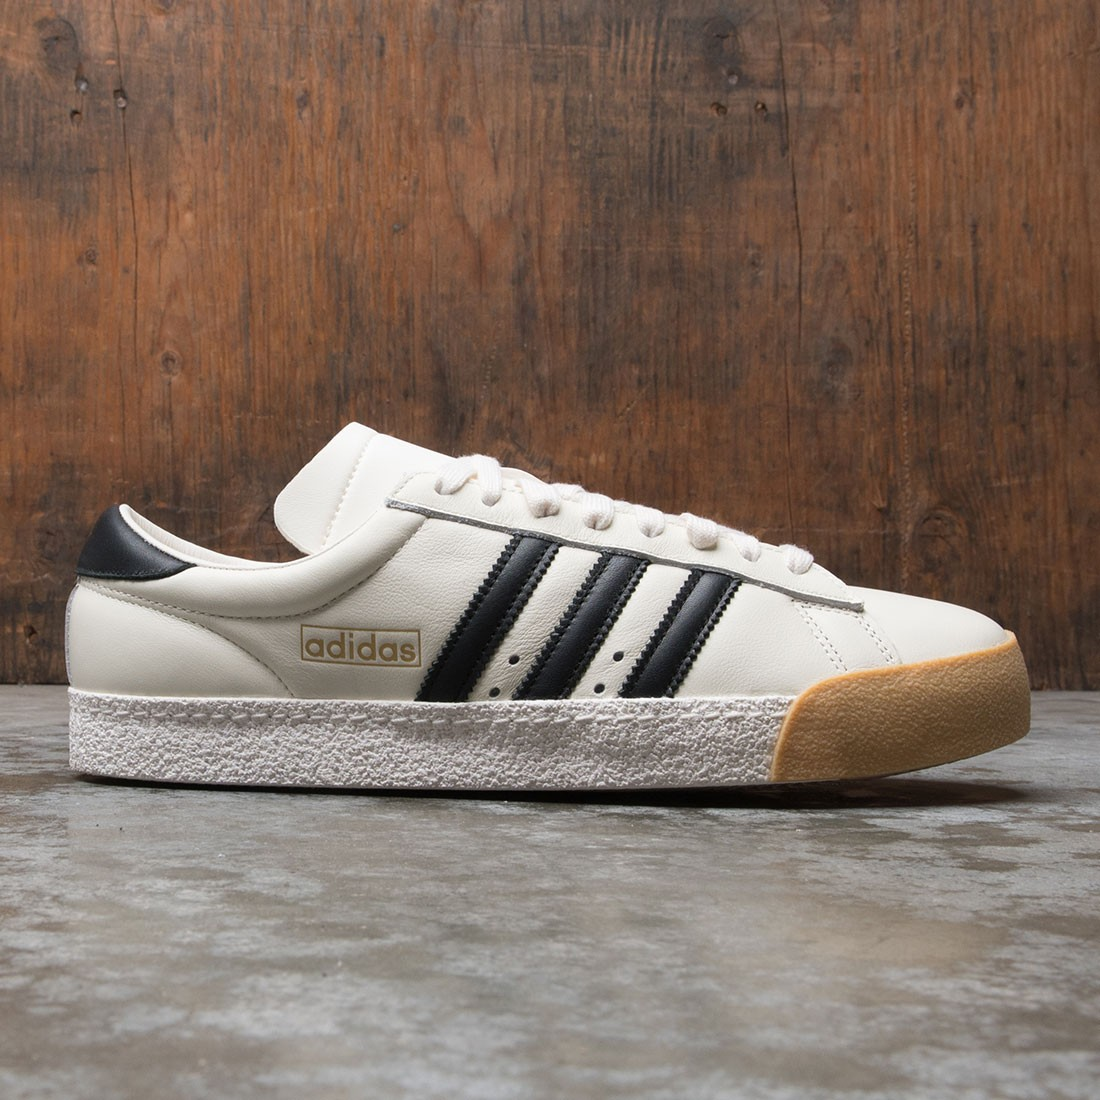 Adidas Consortium Men Supergrip (white / black / gum)